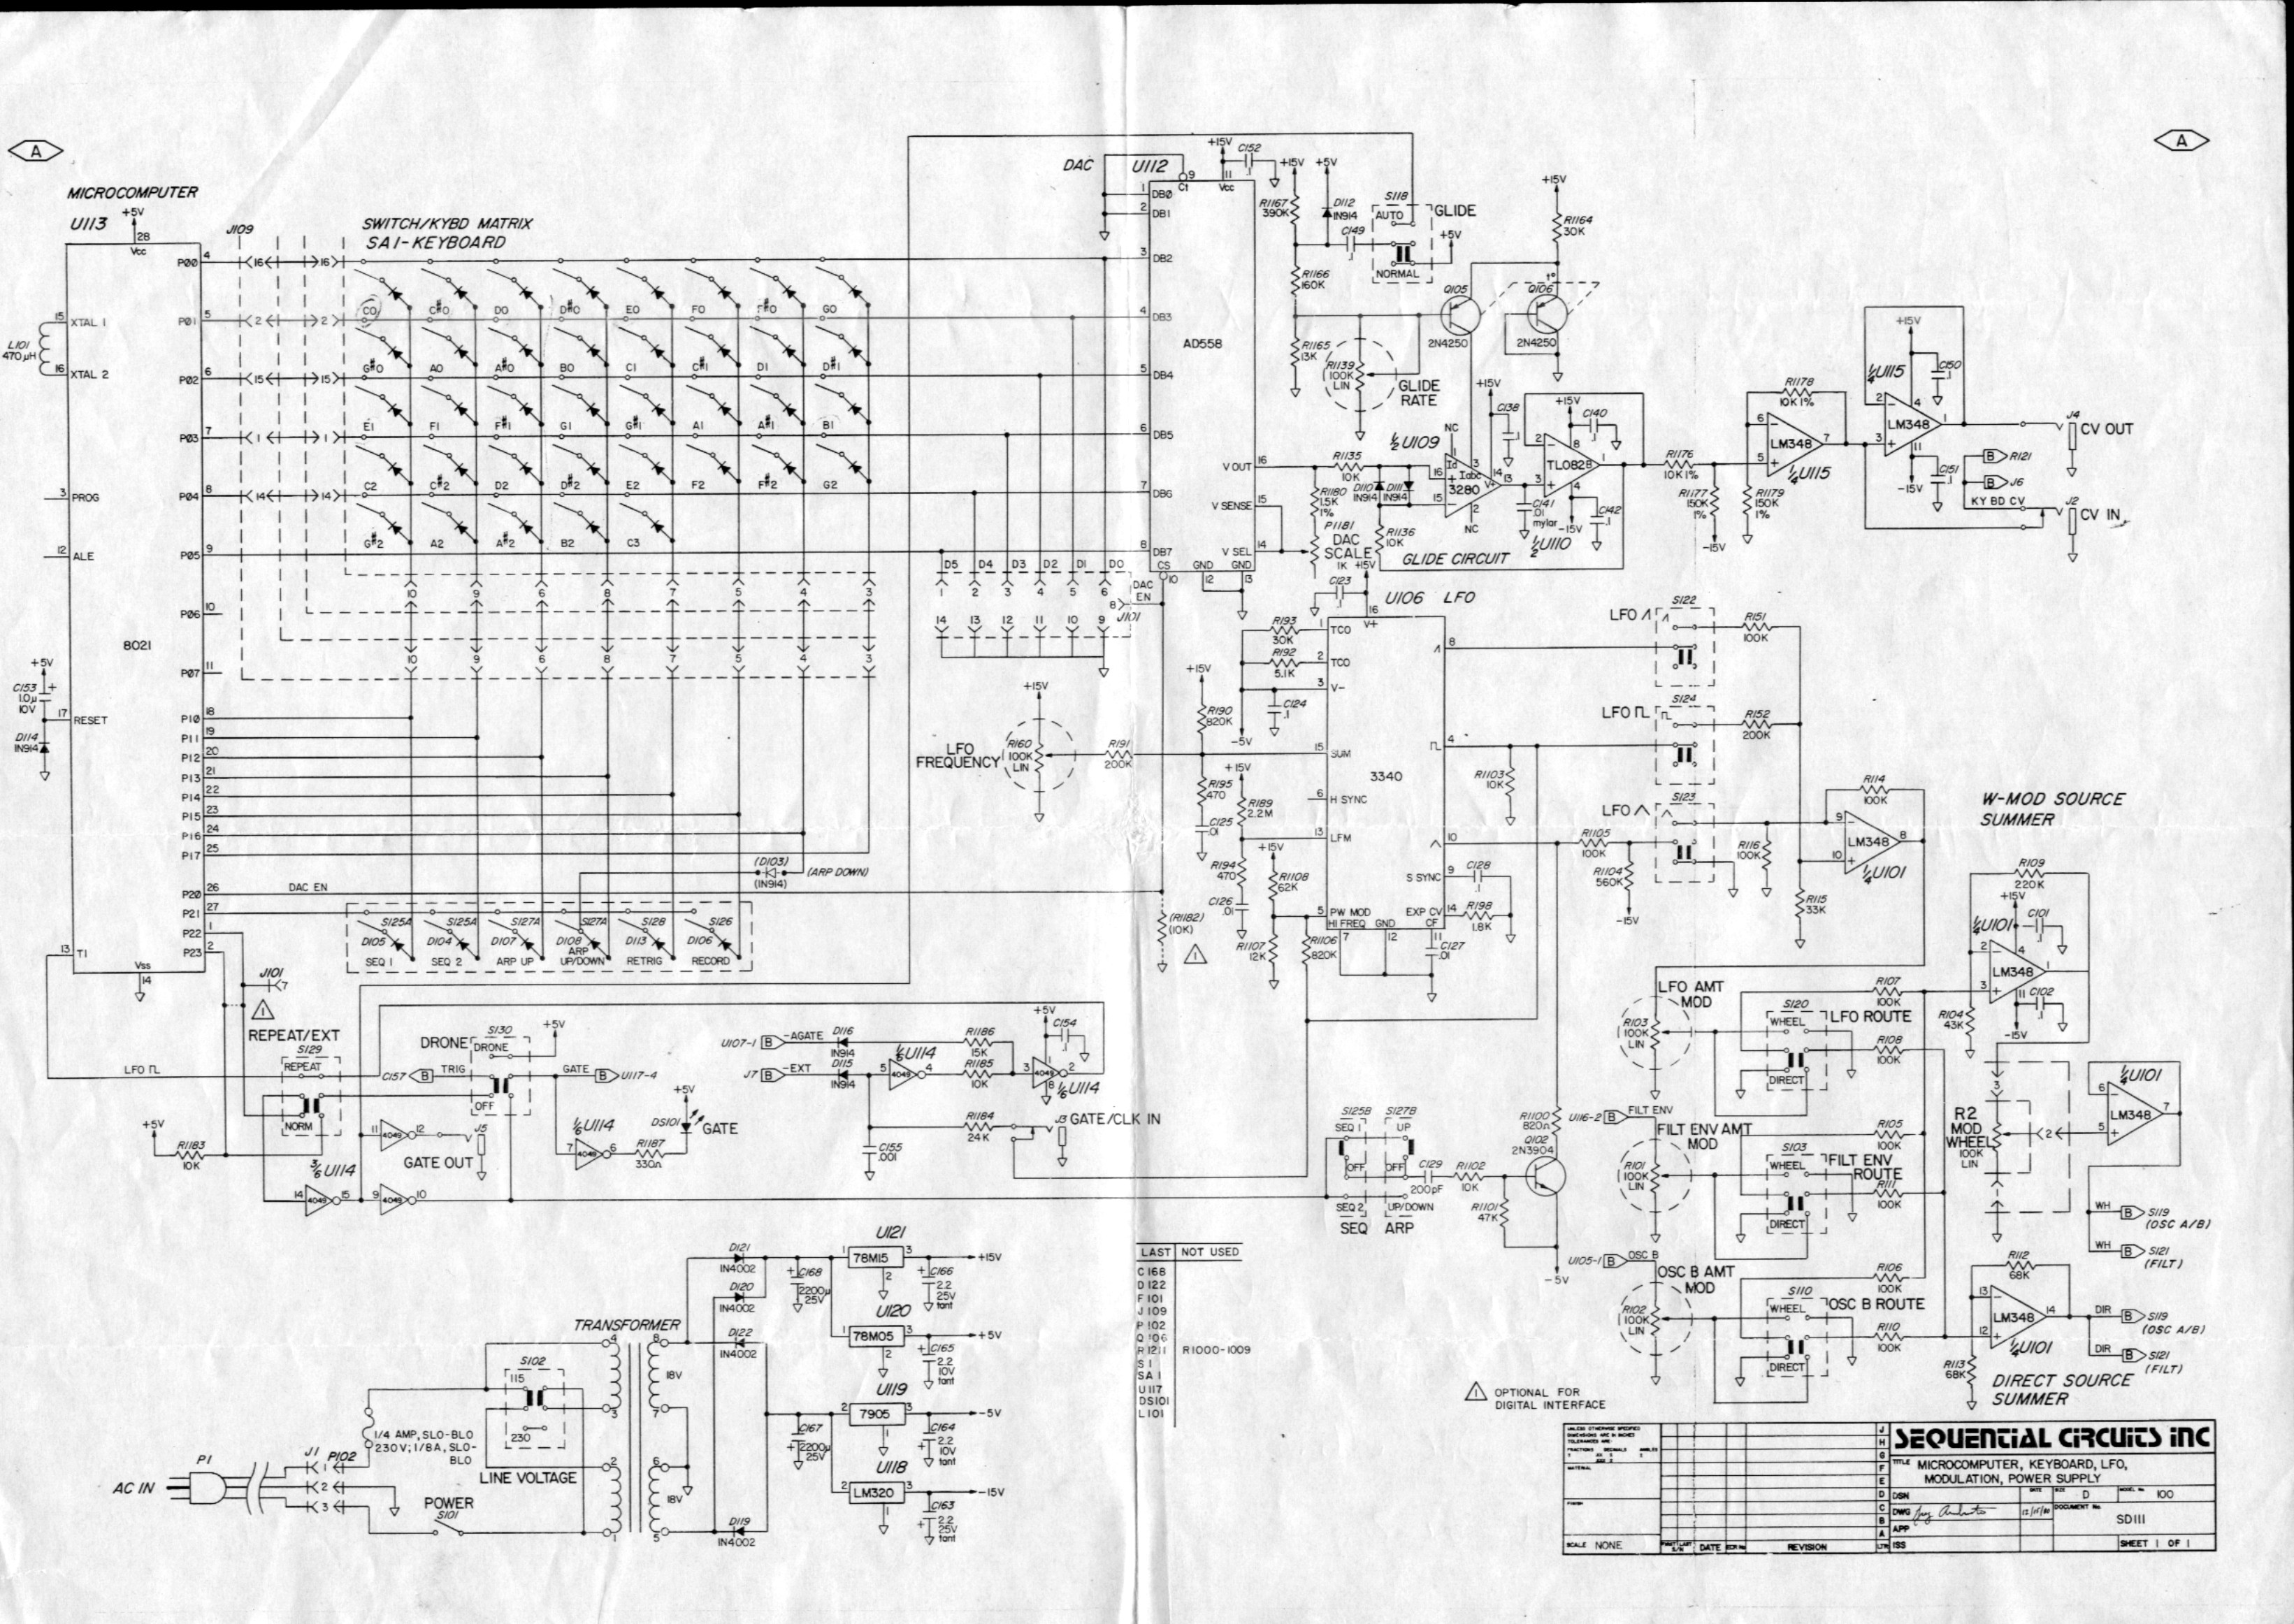 ... Manual.pdf 24-Dec-2007 18:26 20M Sequential Circuits Pro-One Schematic  1 of 2.jpeg ...